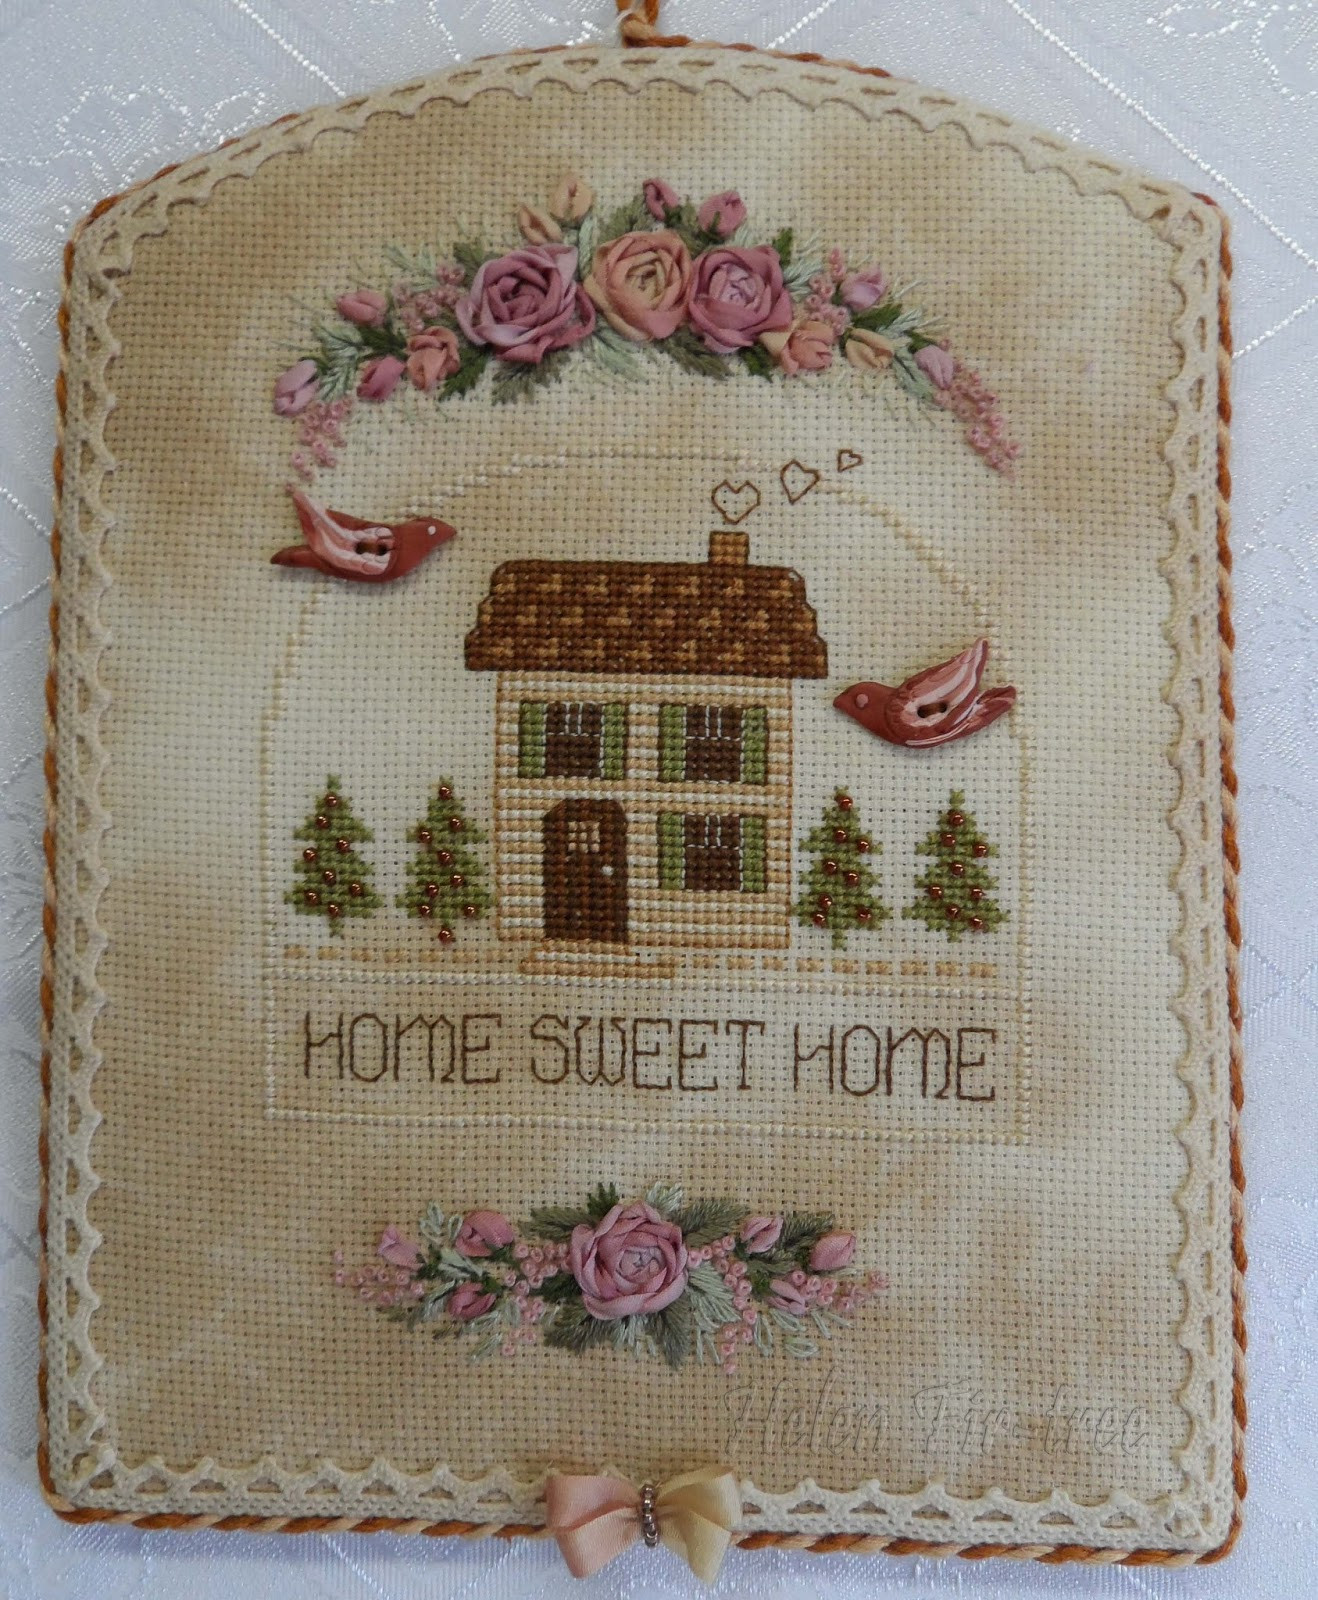 Helen Fir-tree вышивка пинкип cross stitch pinkeep